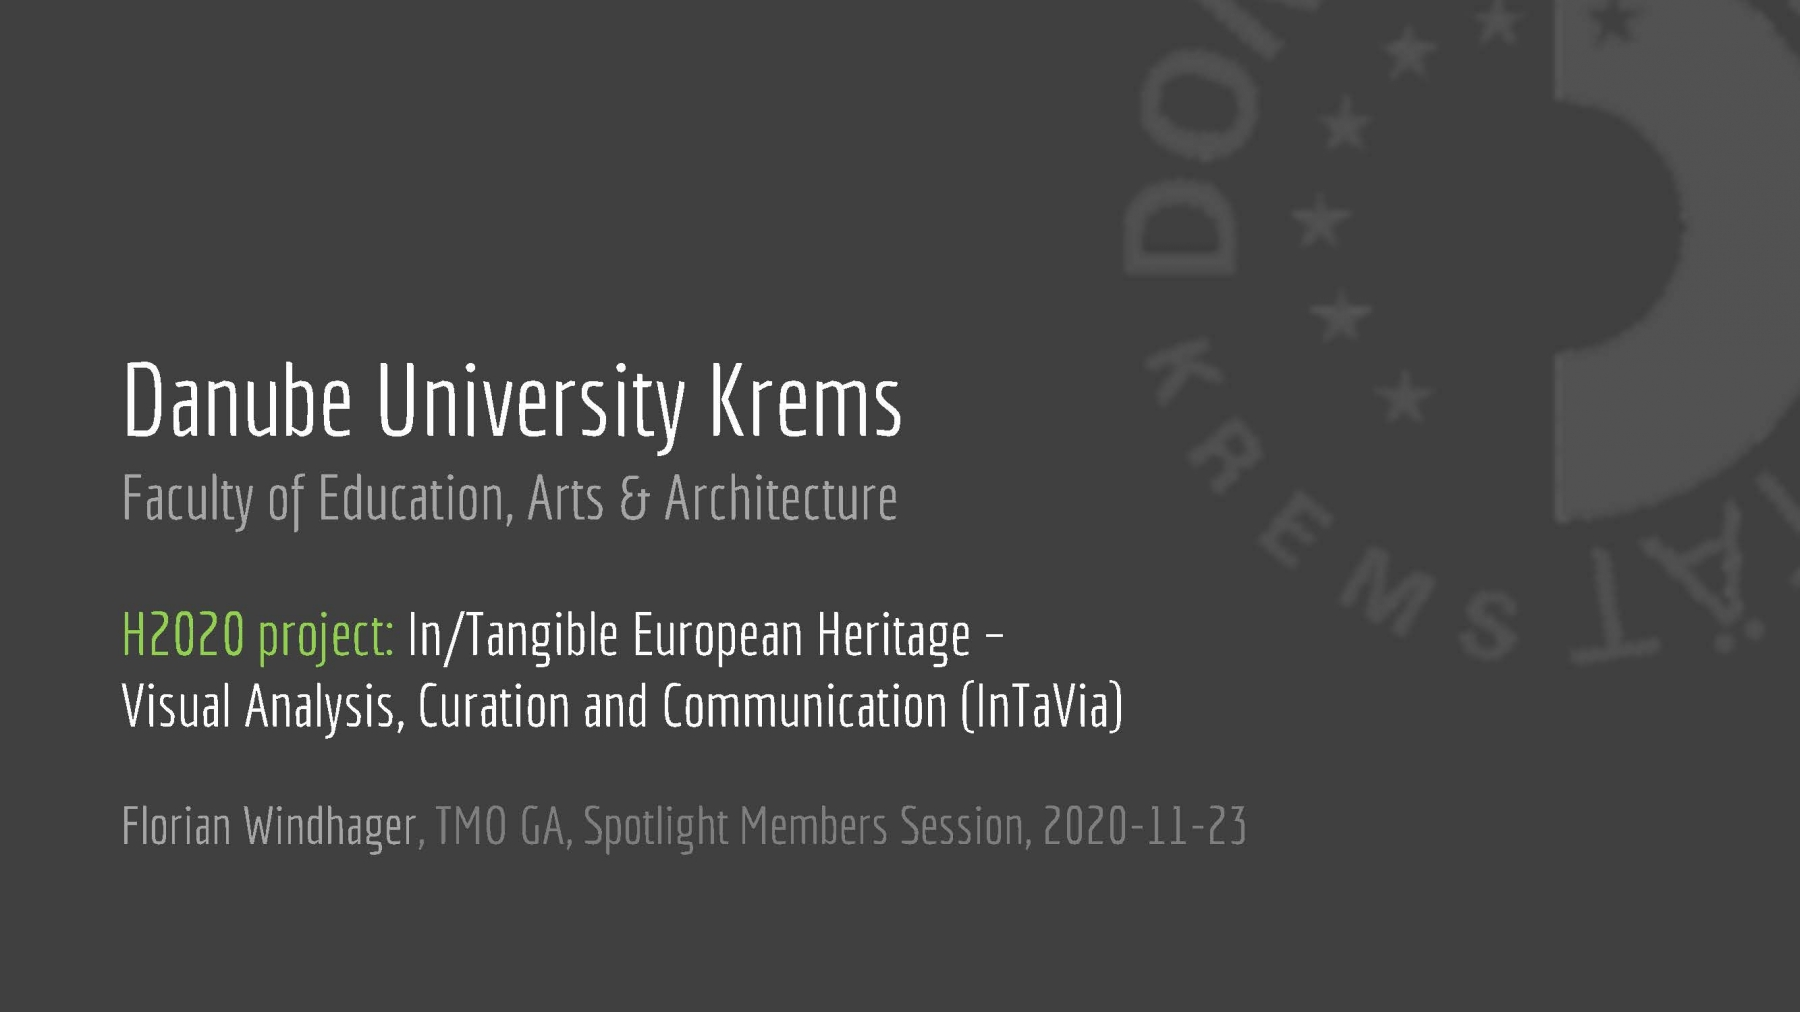 Danube University Krems  (pres. by Florian Windhager)